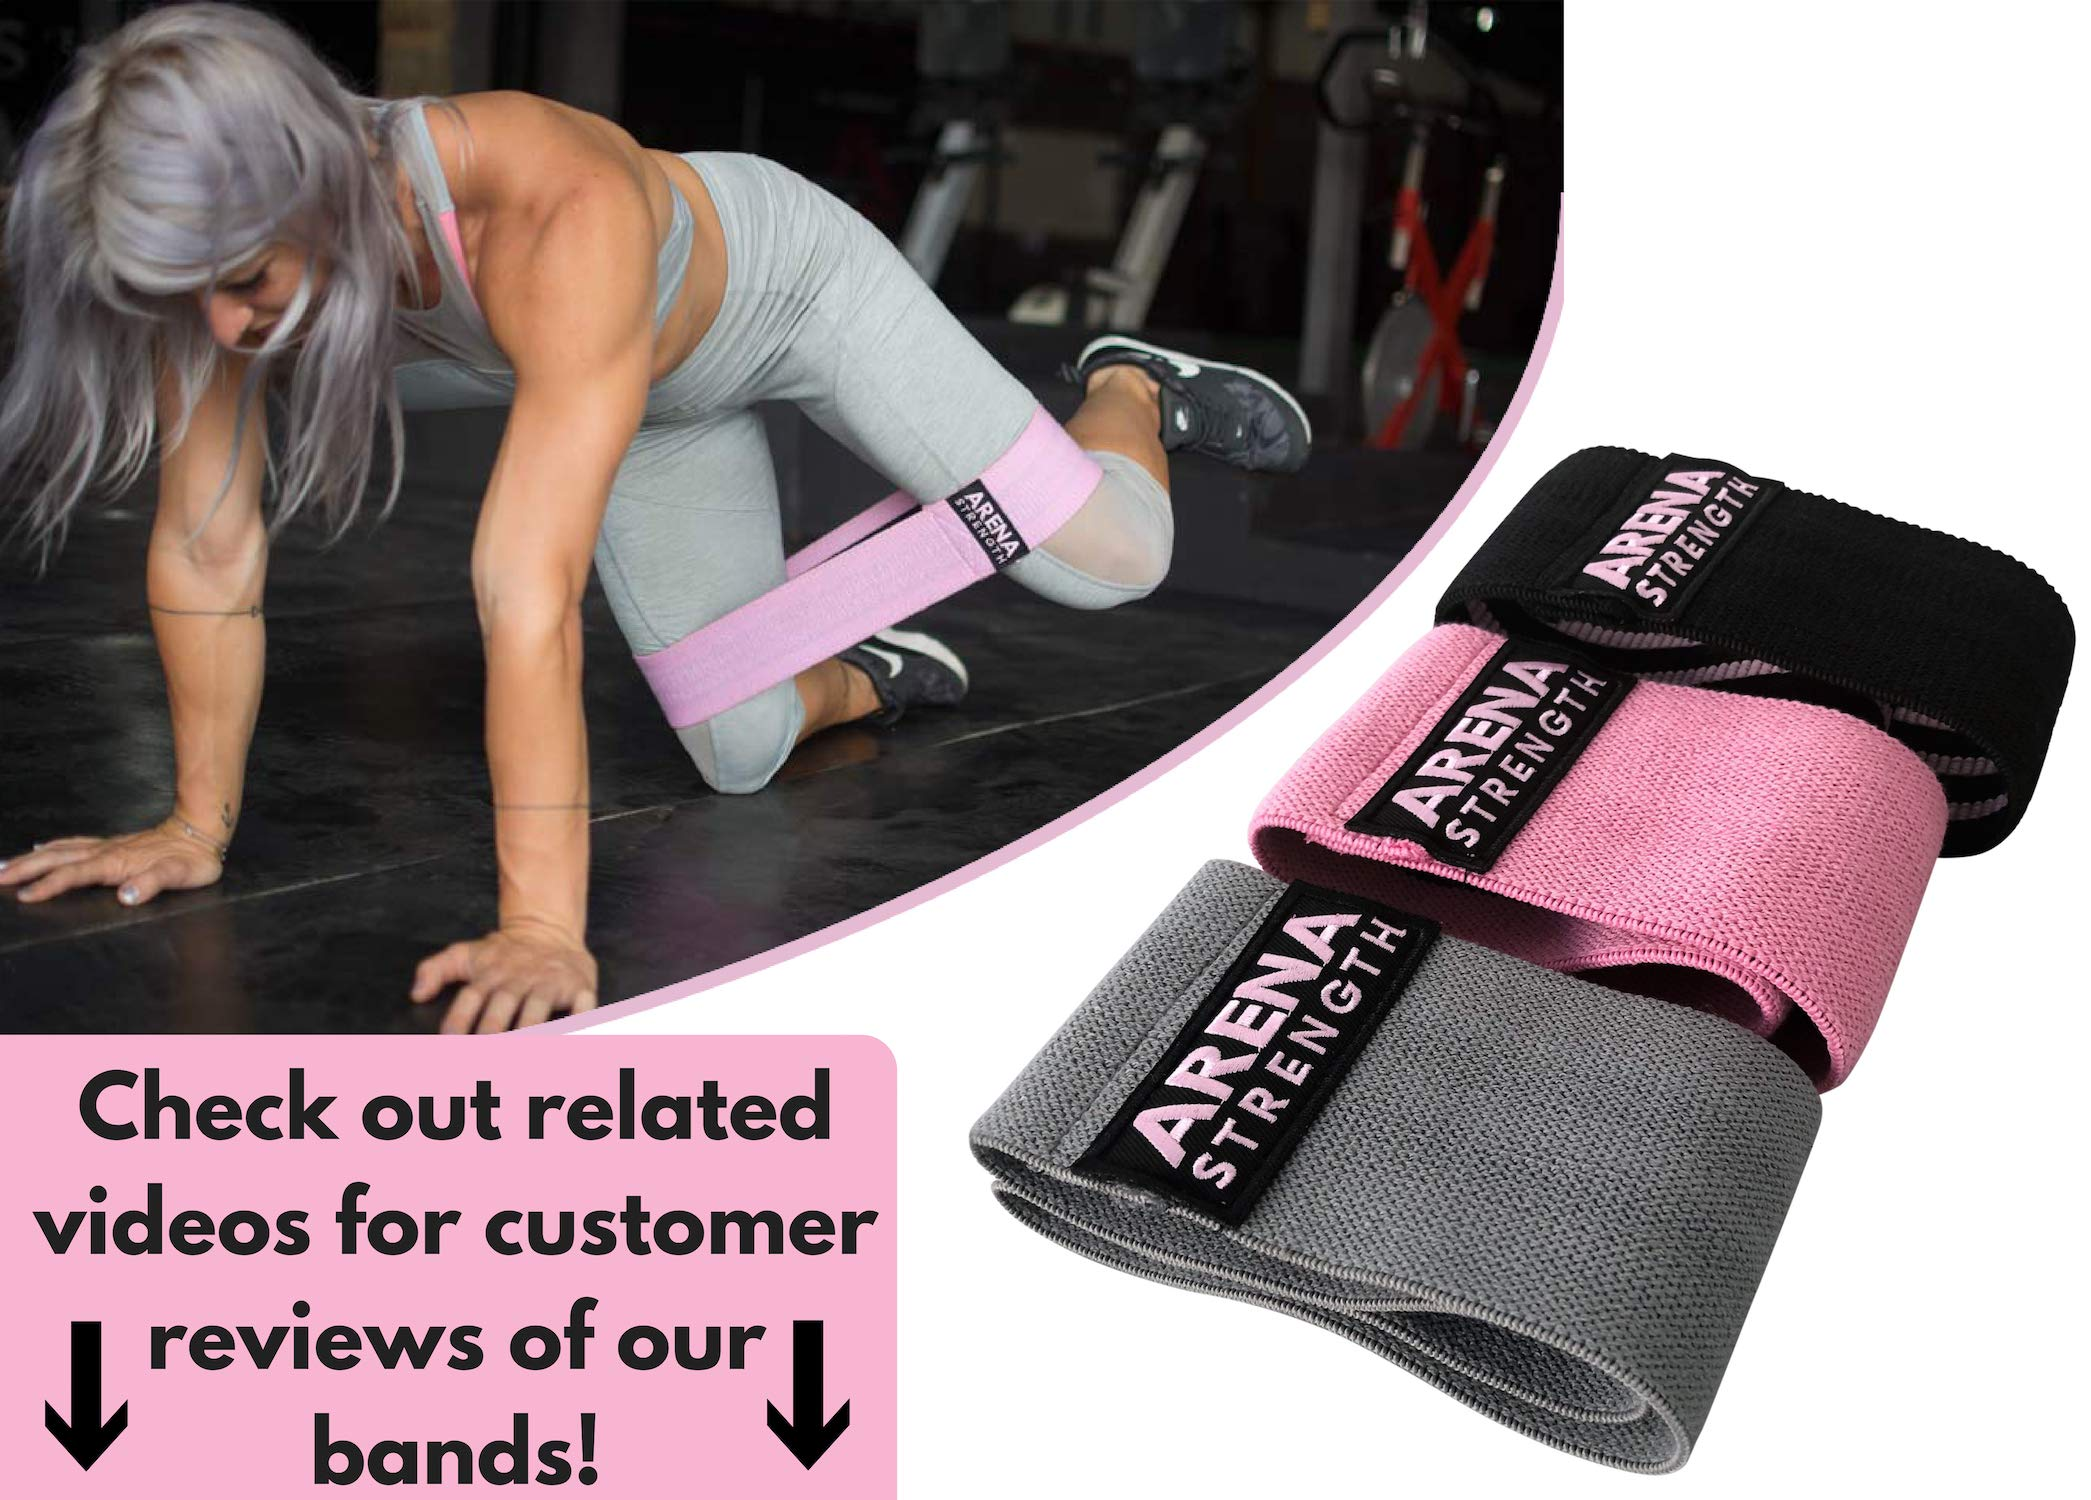 Arena Strength Booty Fabric Bands: Fabric Resistance Bands for Legs and Butt: 3 Pack Set. Perfect Workout Hip Band Resistance. Workout Program and Carry Case Included by Arena Strength (Image #6)